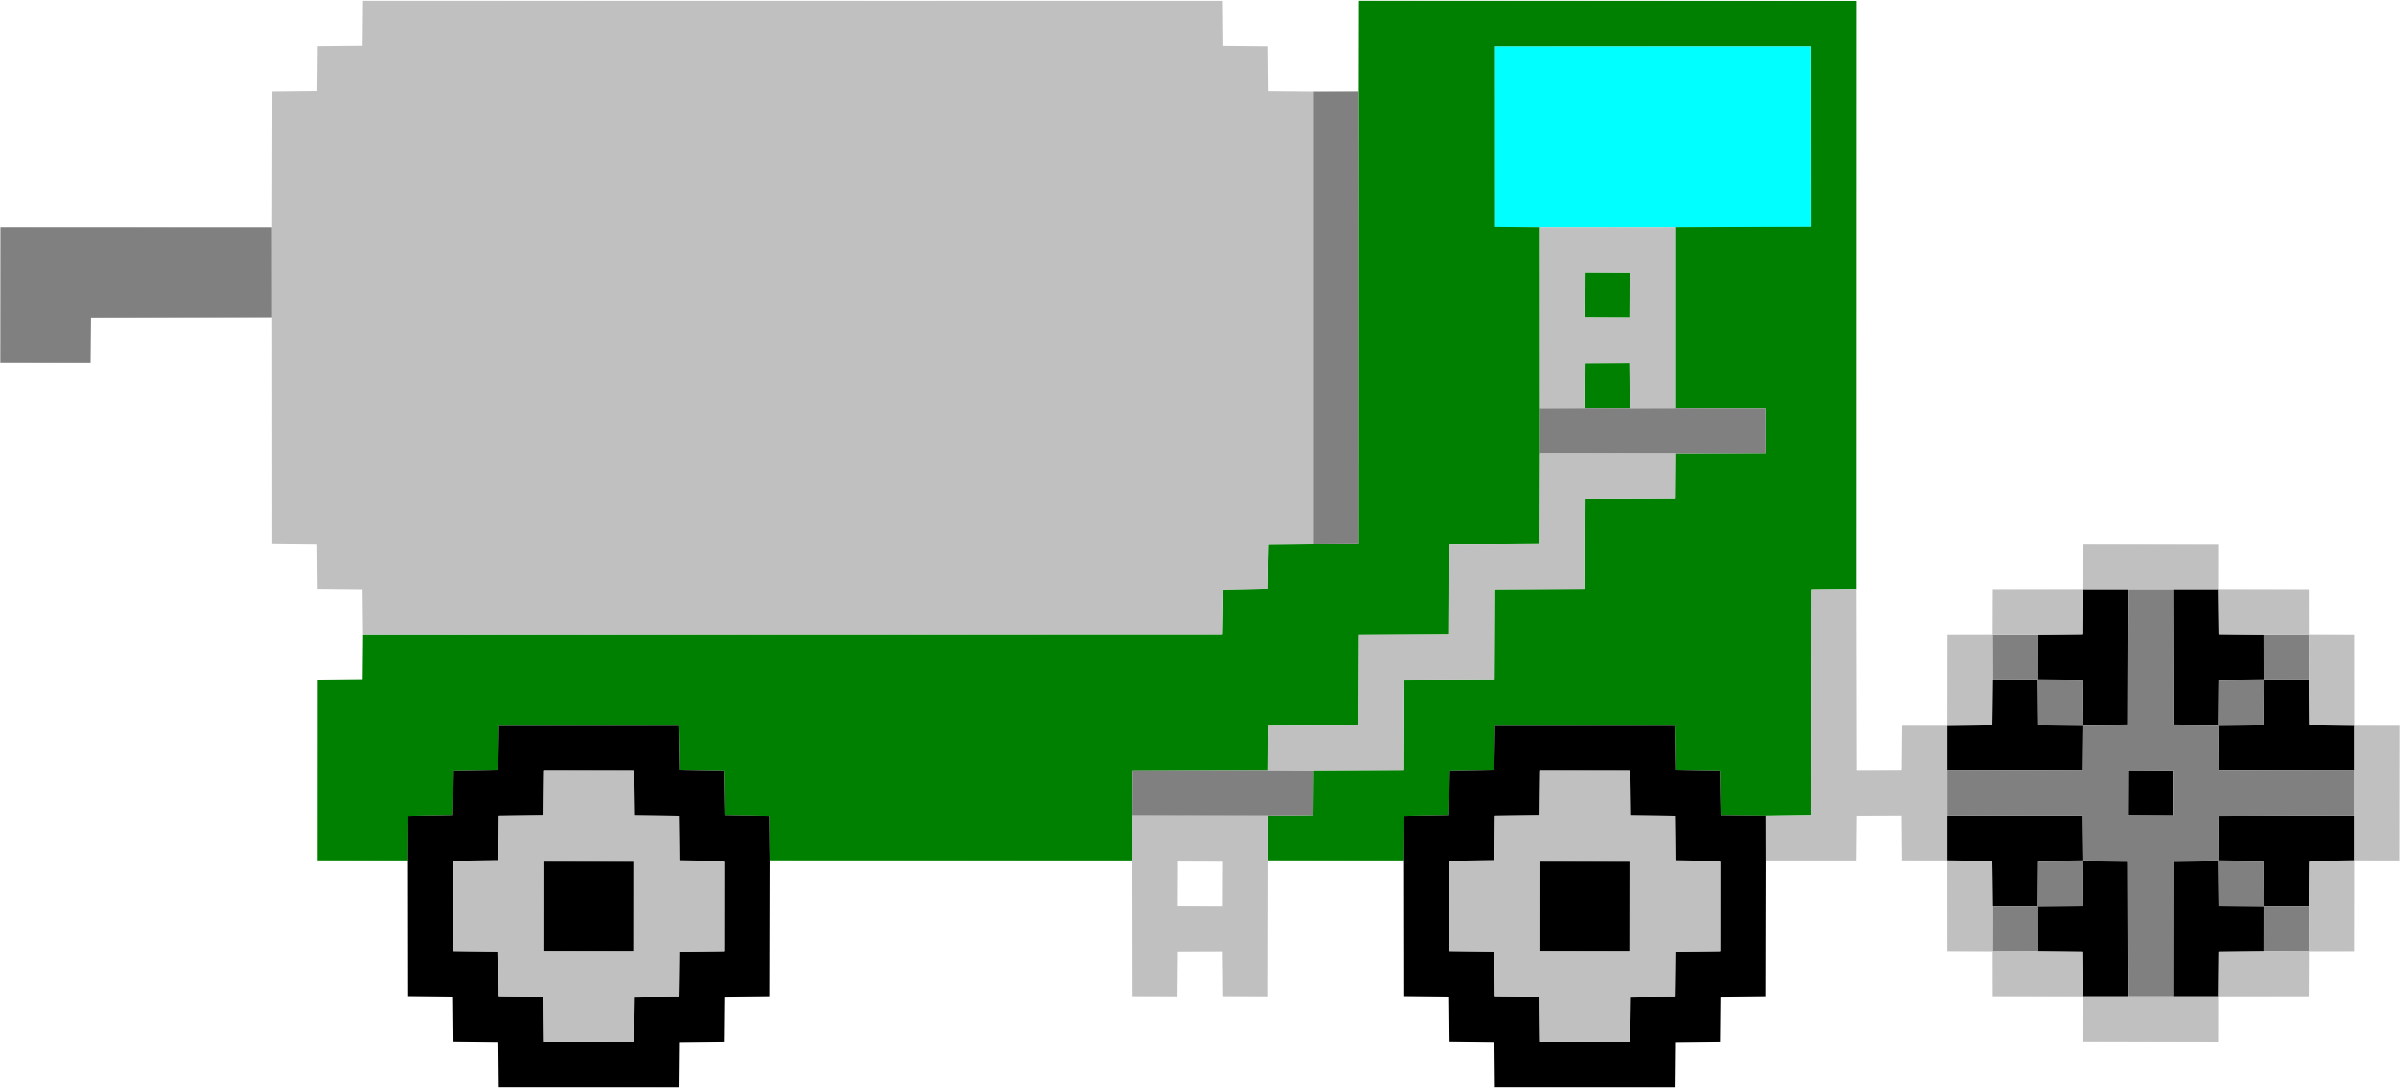 Pixel art harvester by Firkin